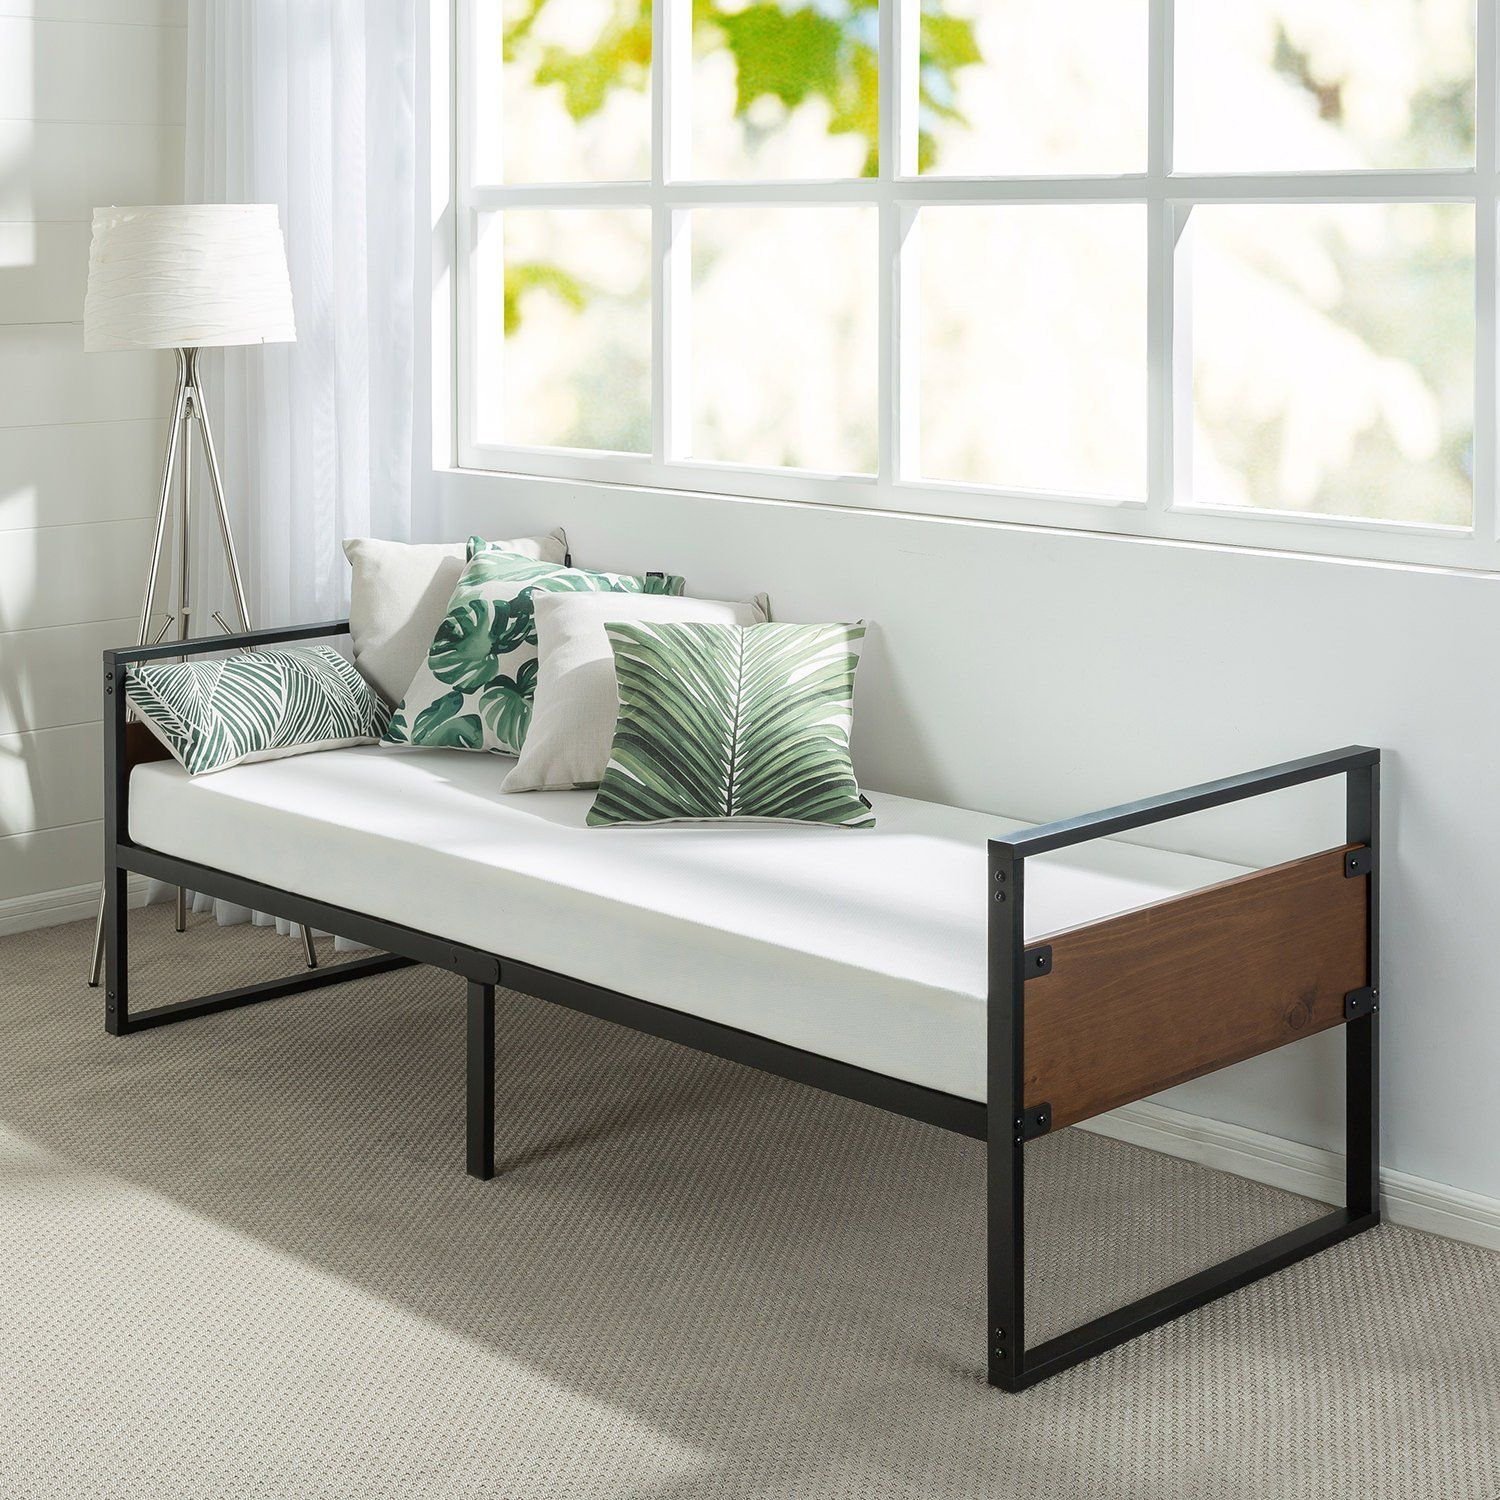 Zinus 30 Inch Wide Daybed Frame with